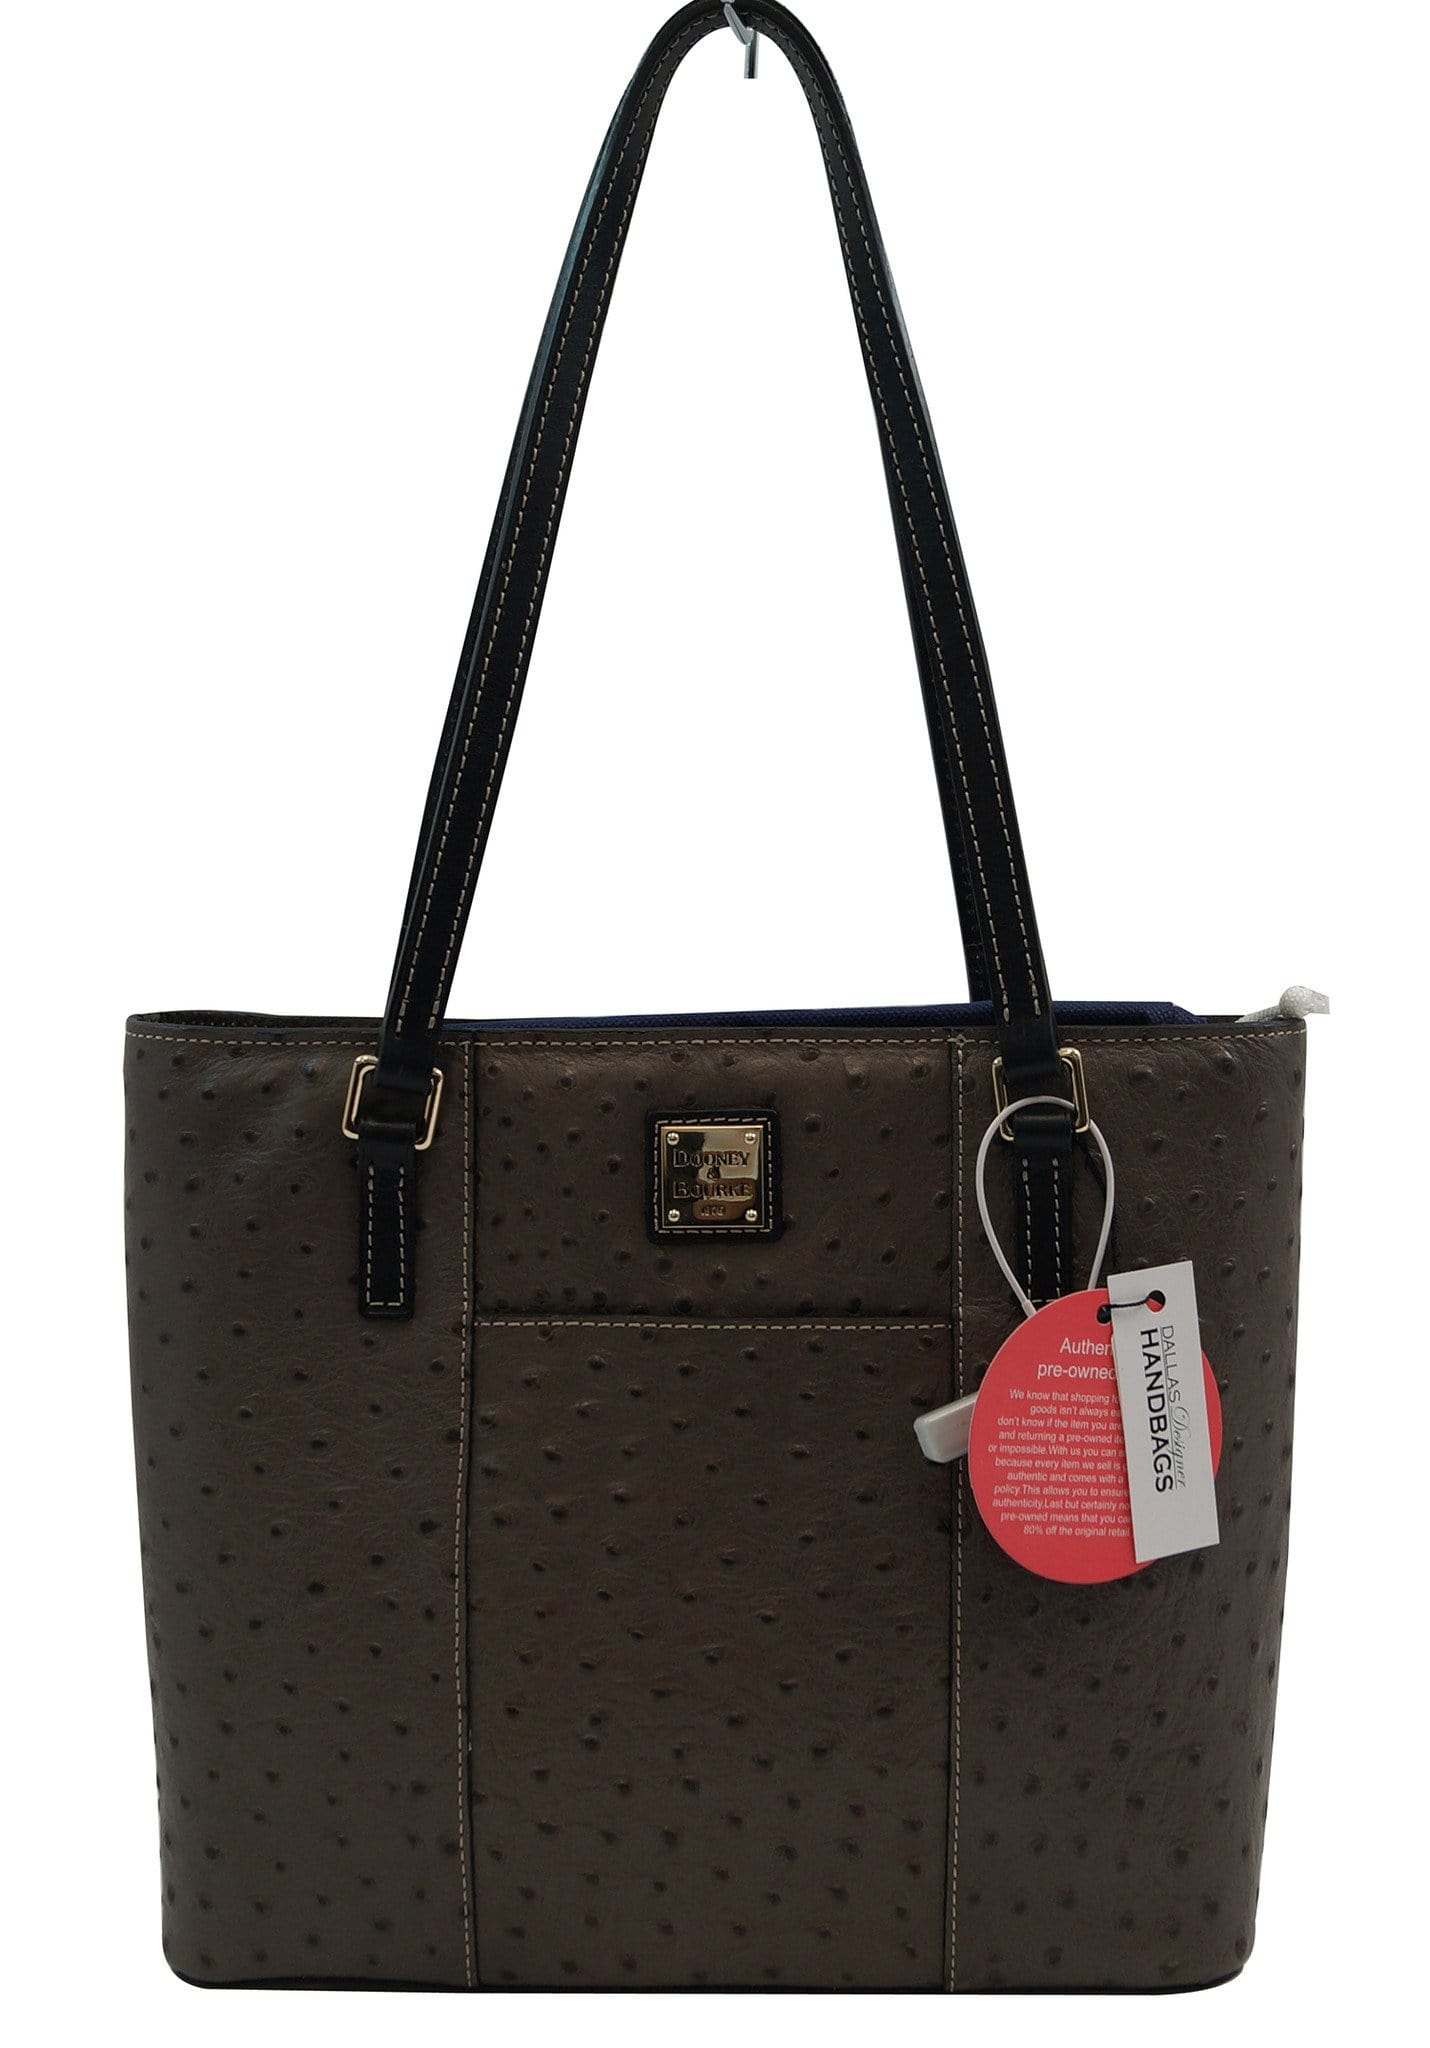 db9f982cef01 Dooney & Bourke Small Lexington Ostrich-Embossed Tote Shoulder Bag